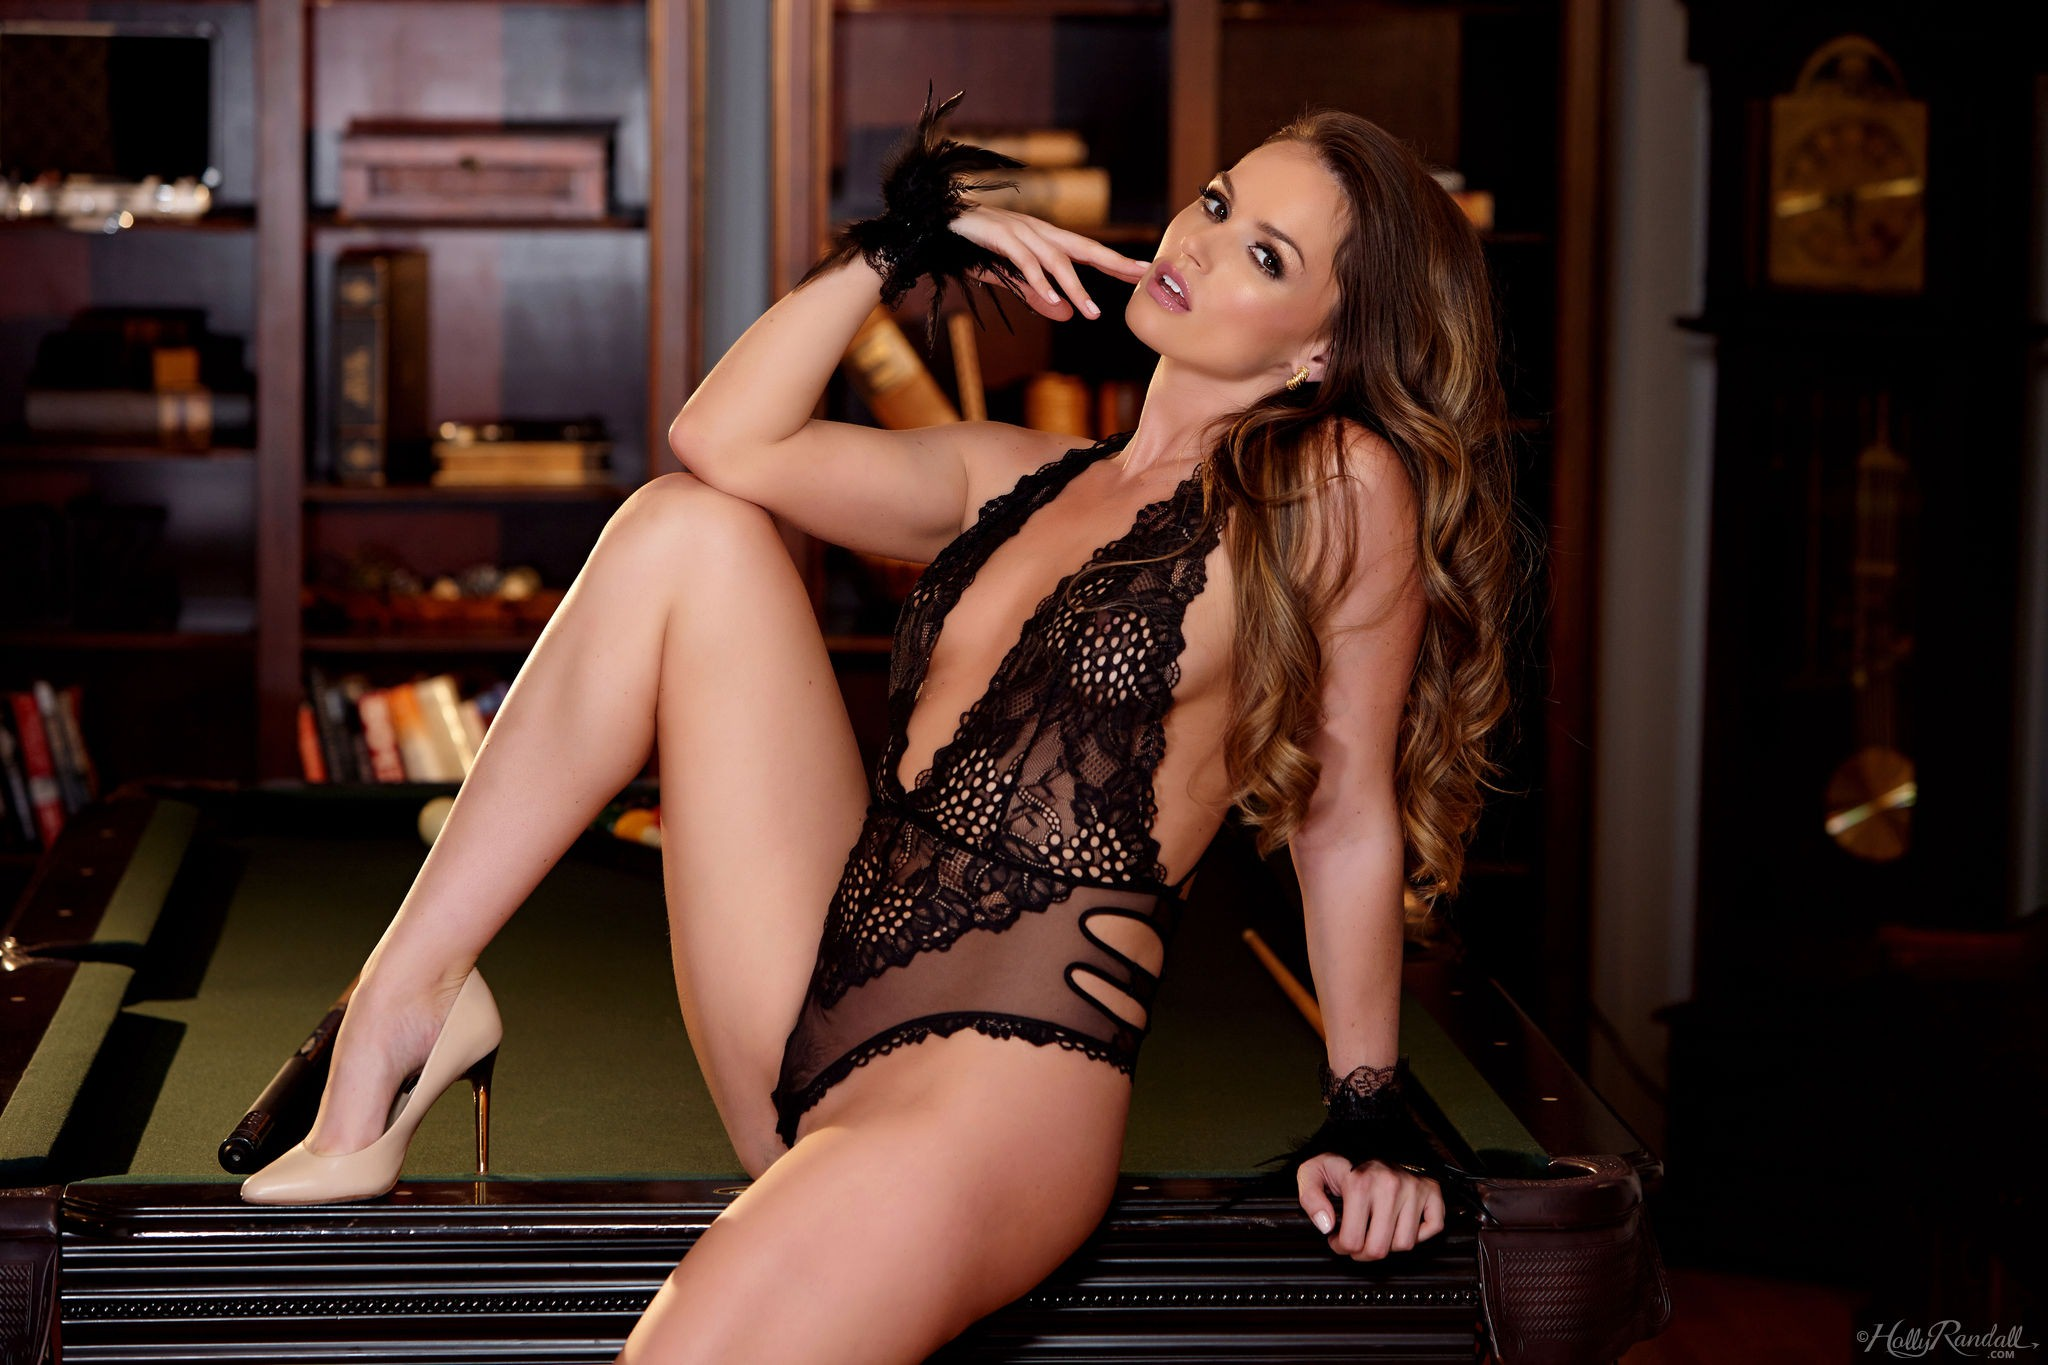 Tori black teasing and masturbating hot - 4 10